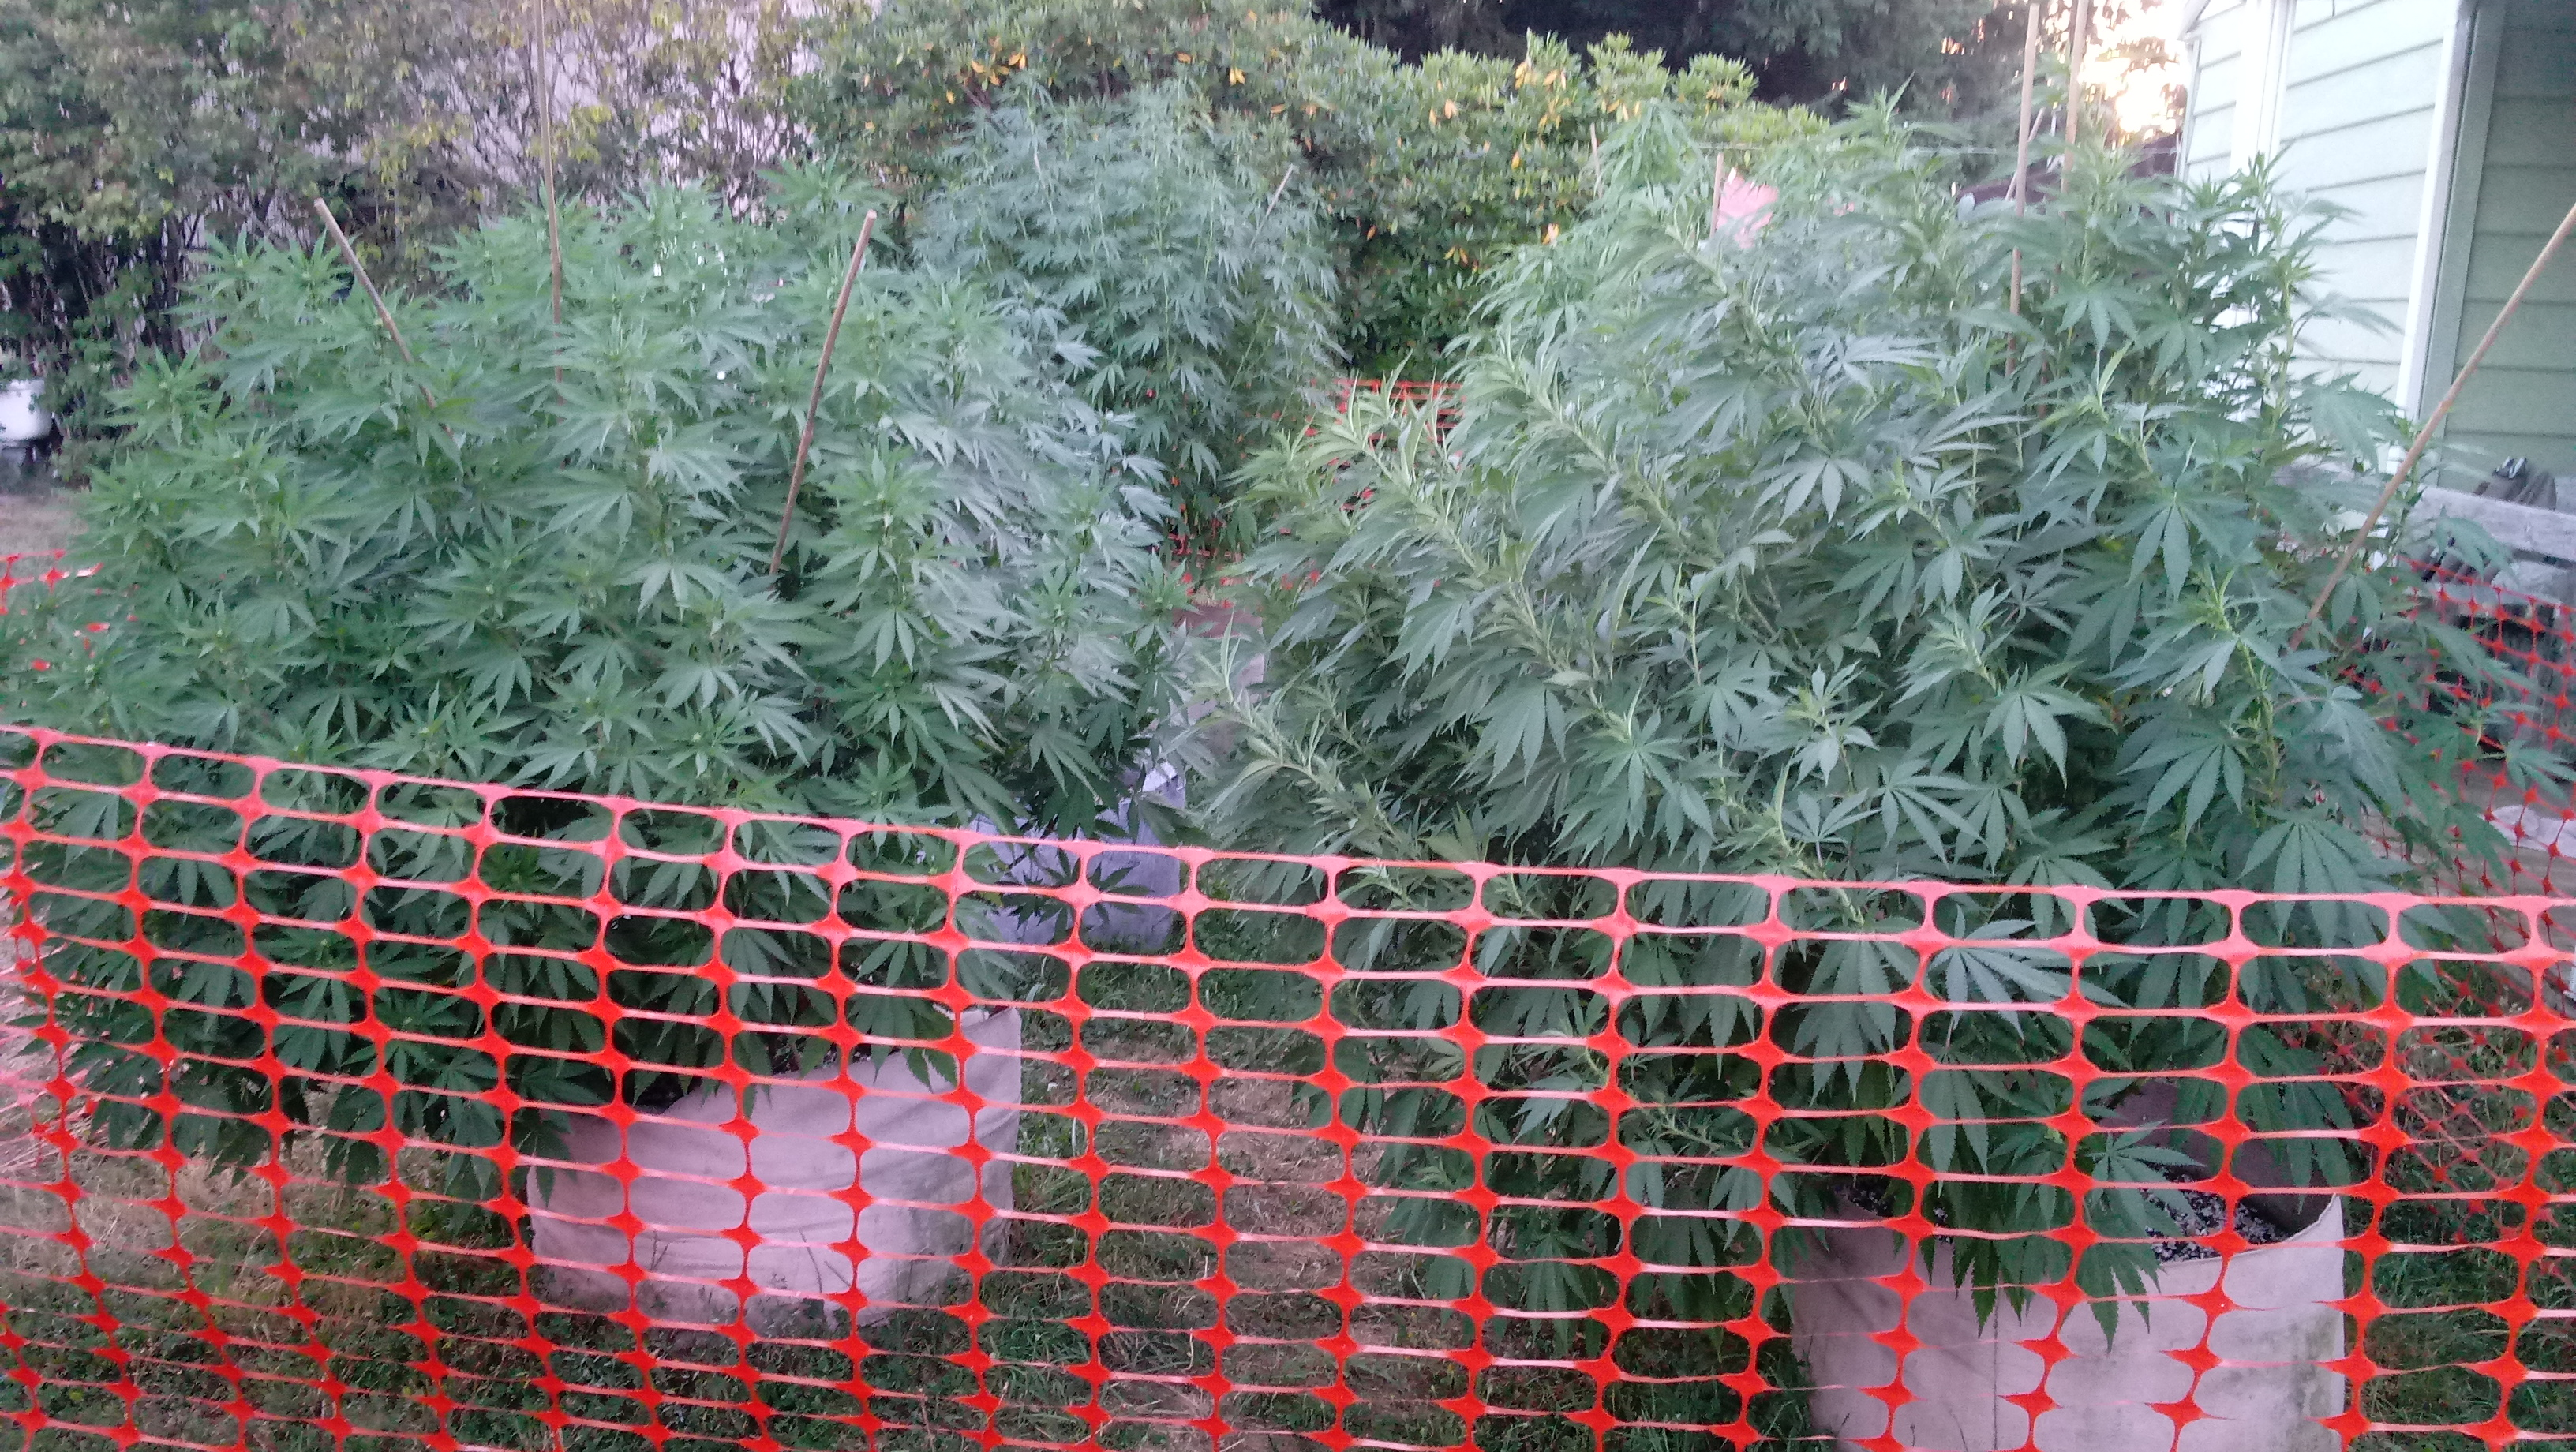 Backyard Cannabis Farming 2019 - Episode 12: Restructuring Supports for High Winds, Reasons NOT to Water When Plants are Drooping, Identifying Nutrient Deficiencies & Solutions